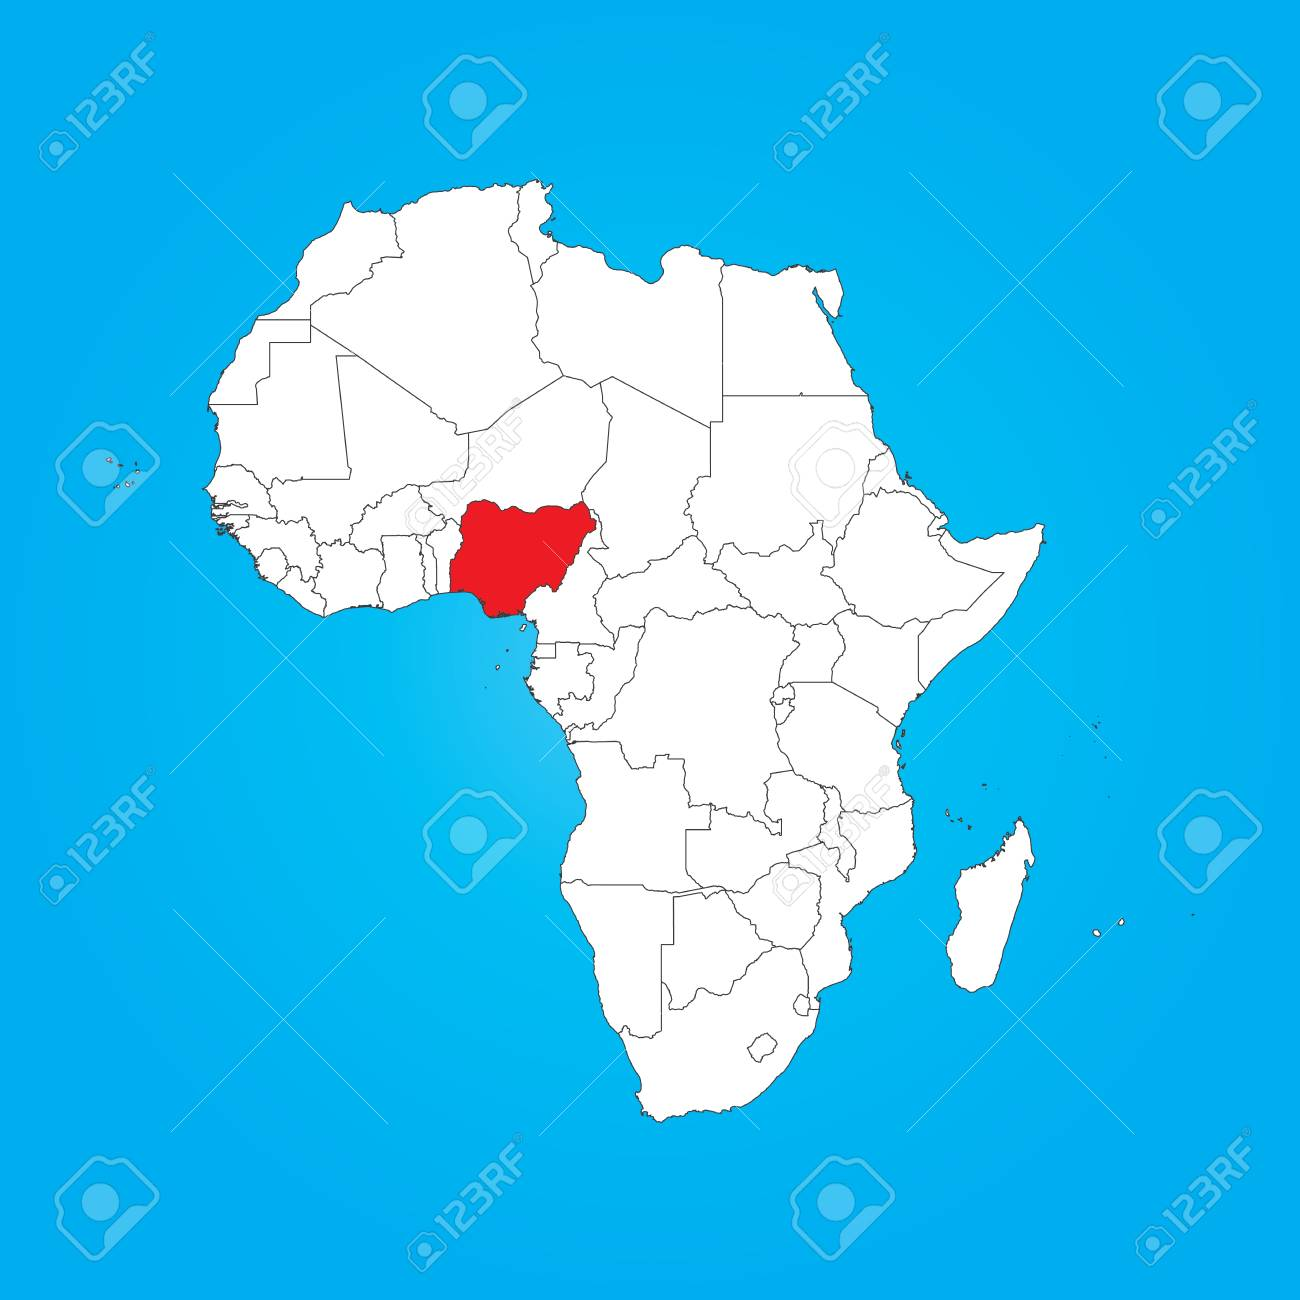 Map Of Africa Nigeria.A Map Of Africa With A Selected Country Of Nigeria